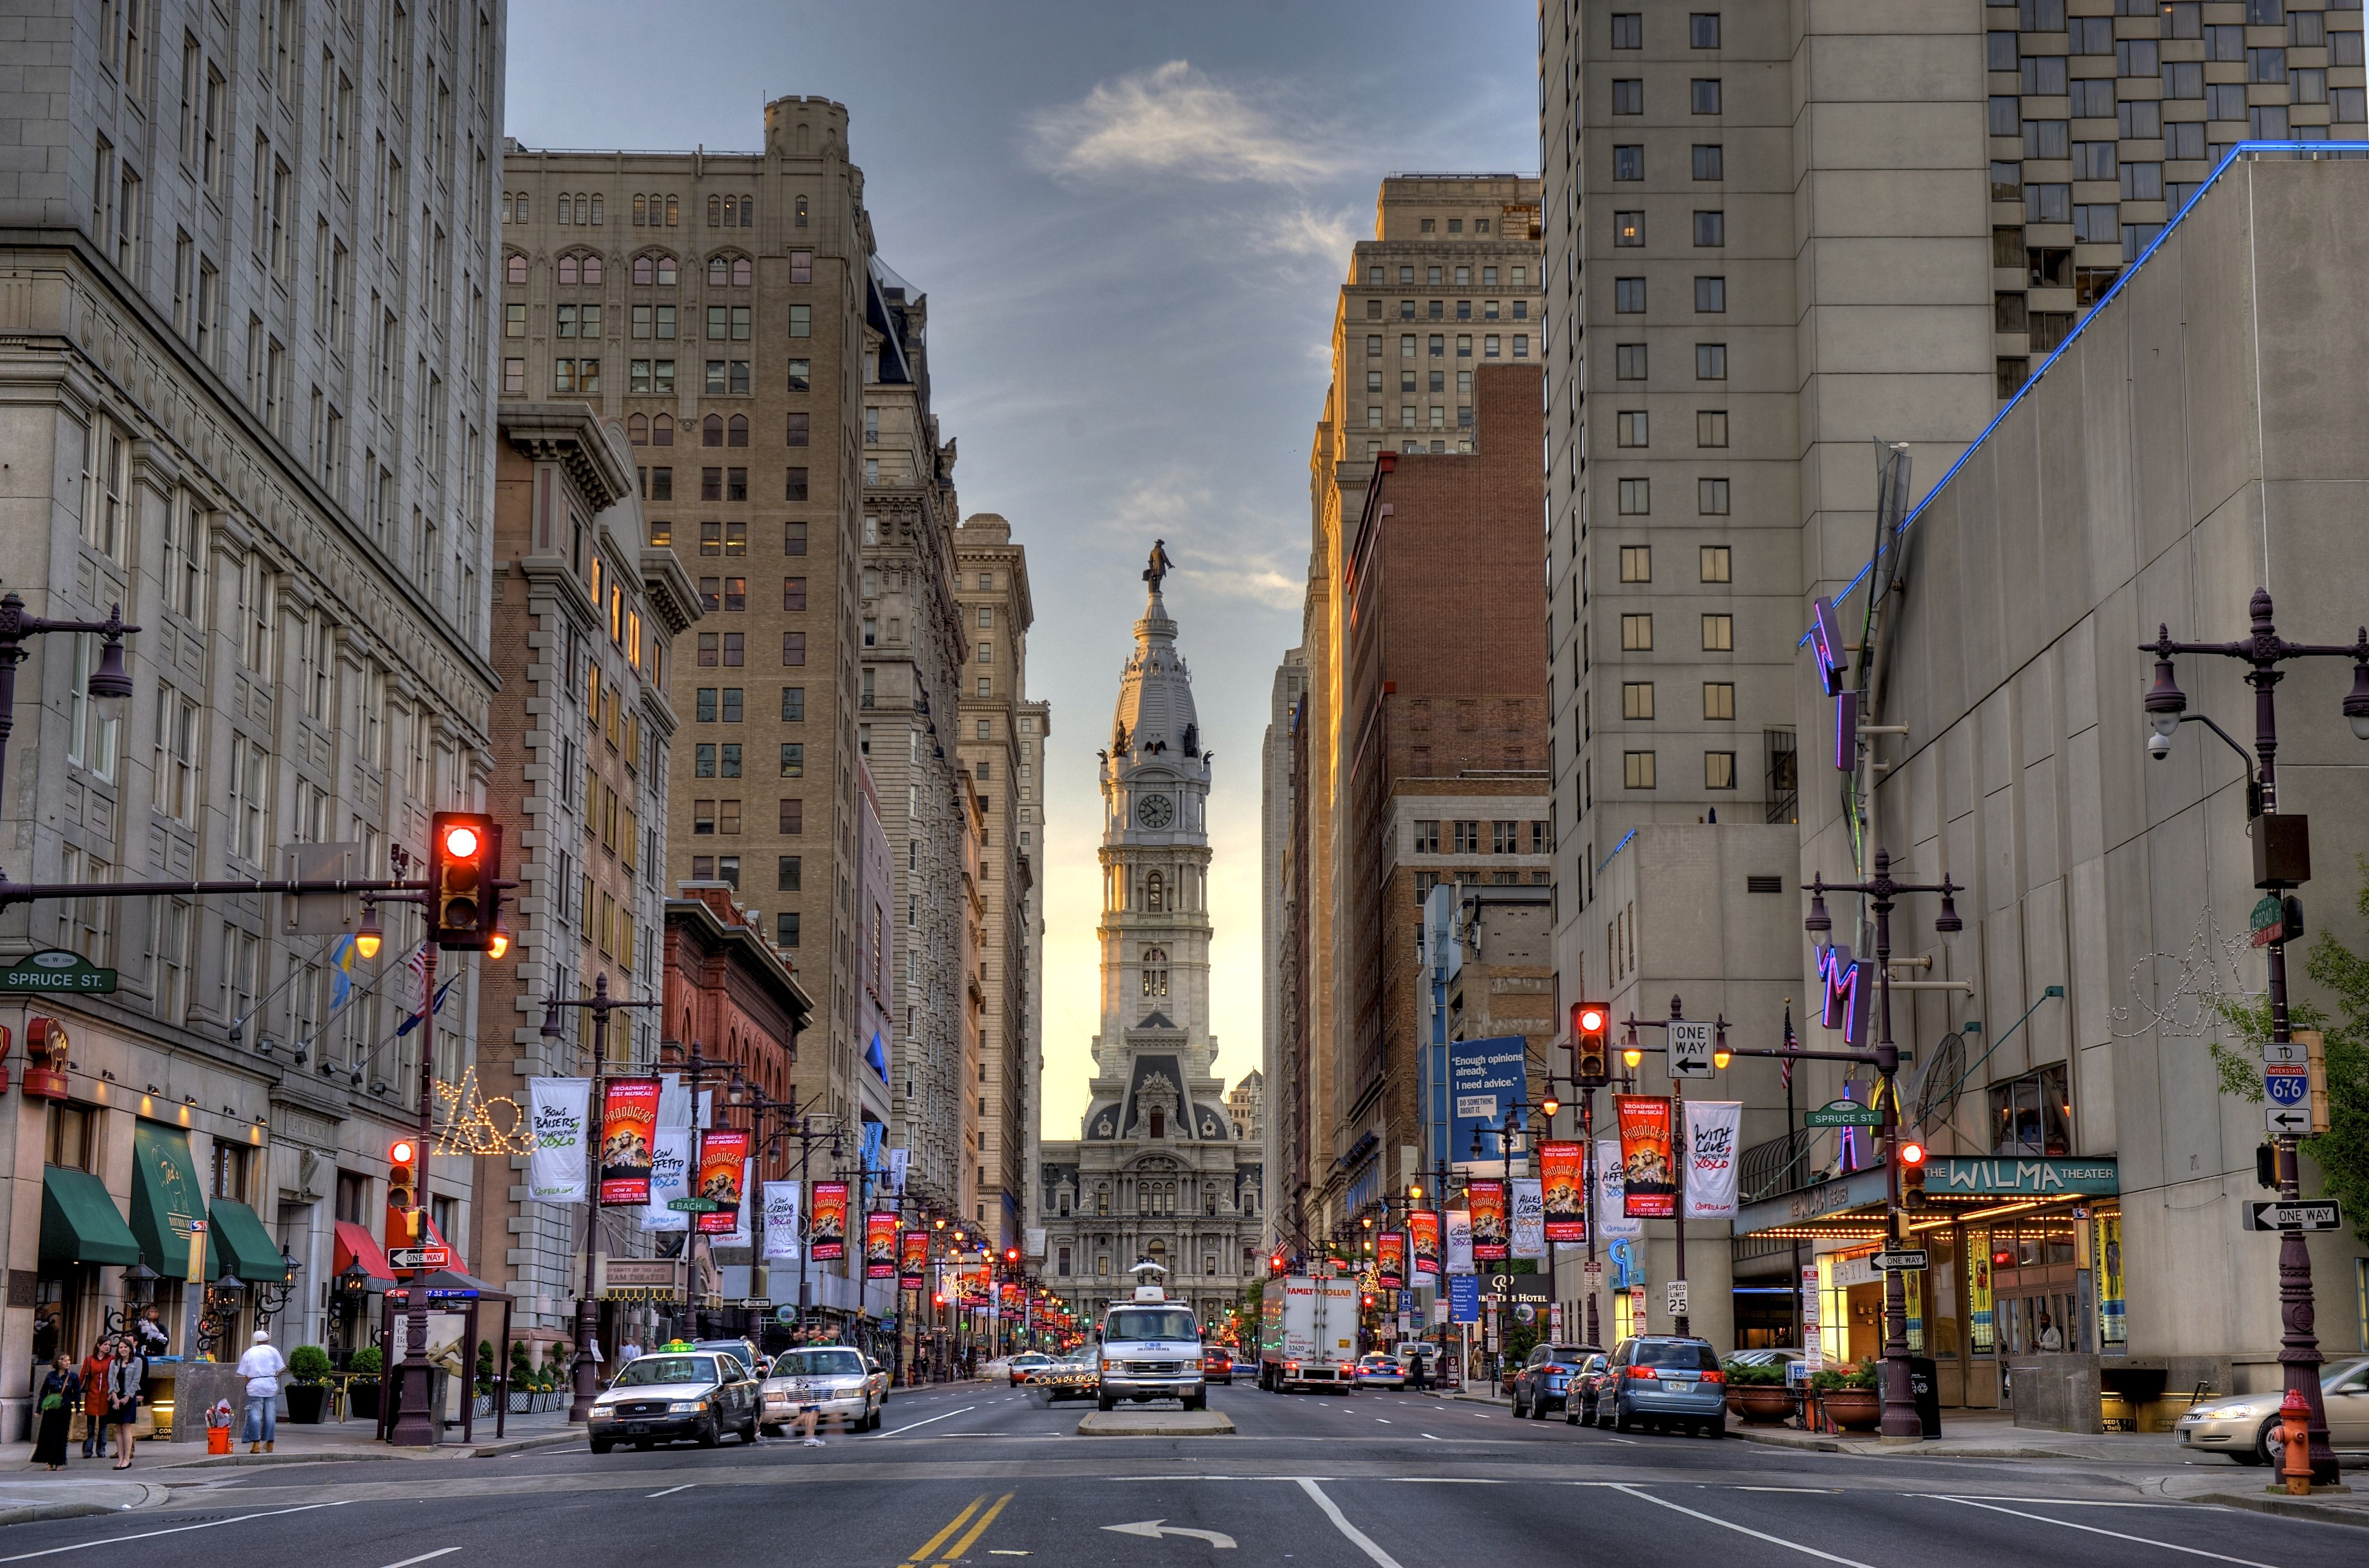 1000+ images about Philadelphia on Pinterest | Statue of, Old city ...